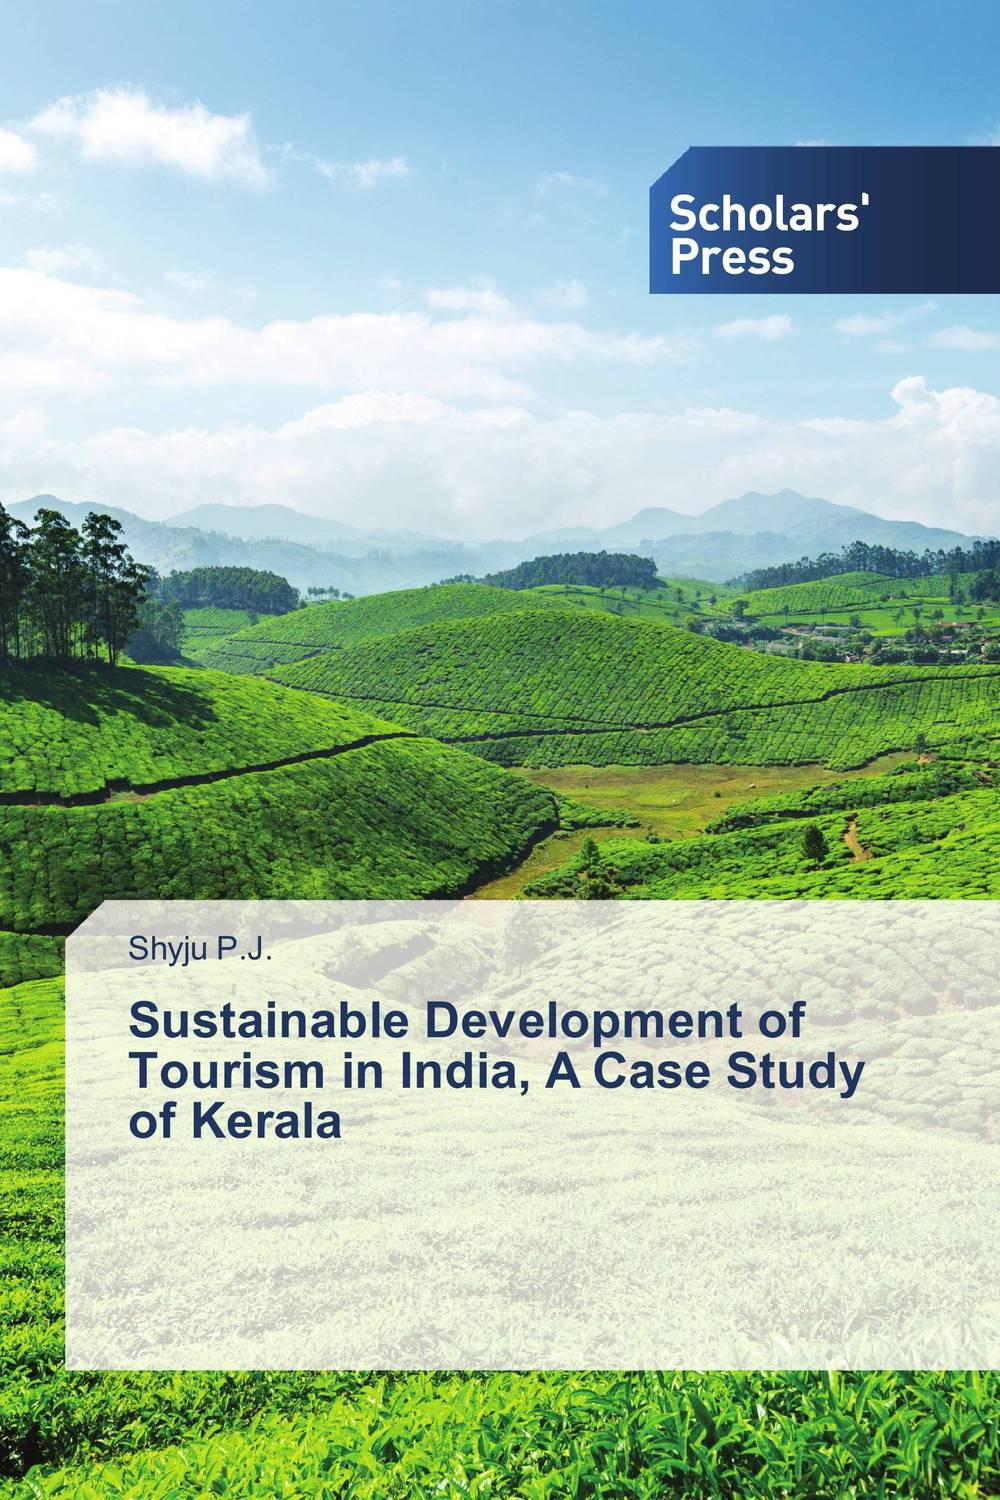 Sustainable Development of Tourism in India: A Case Study of Kerala olorunfemi samuel oluwaseyi tourism development in nigeria